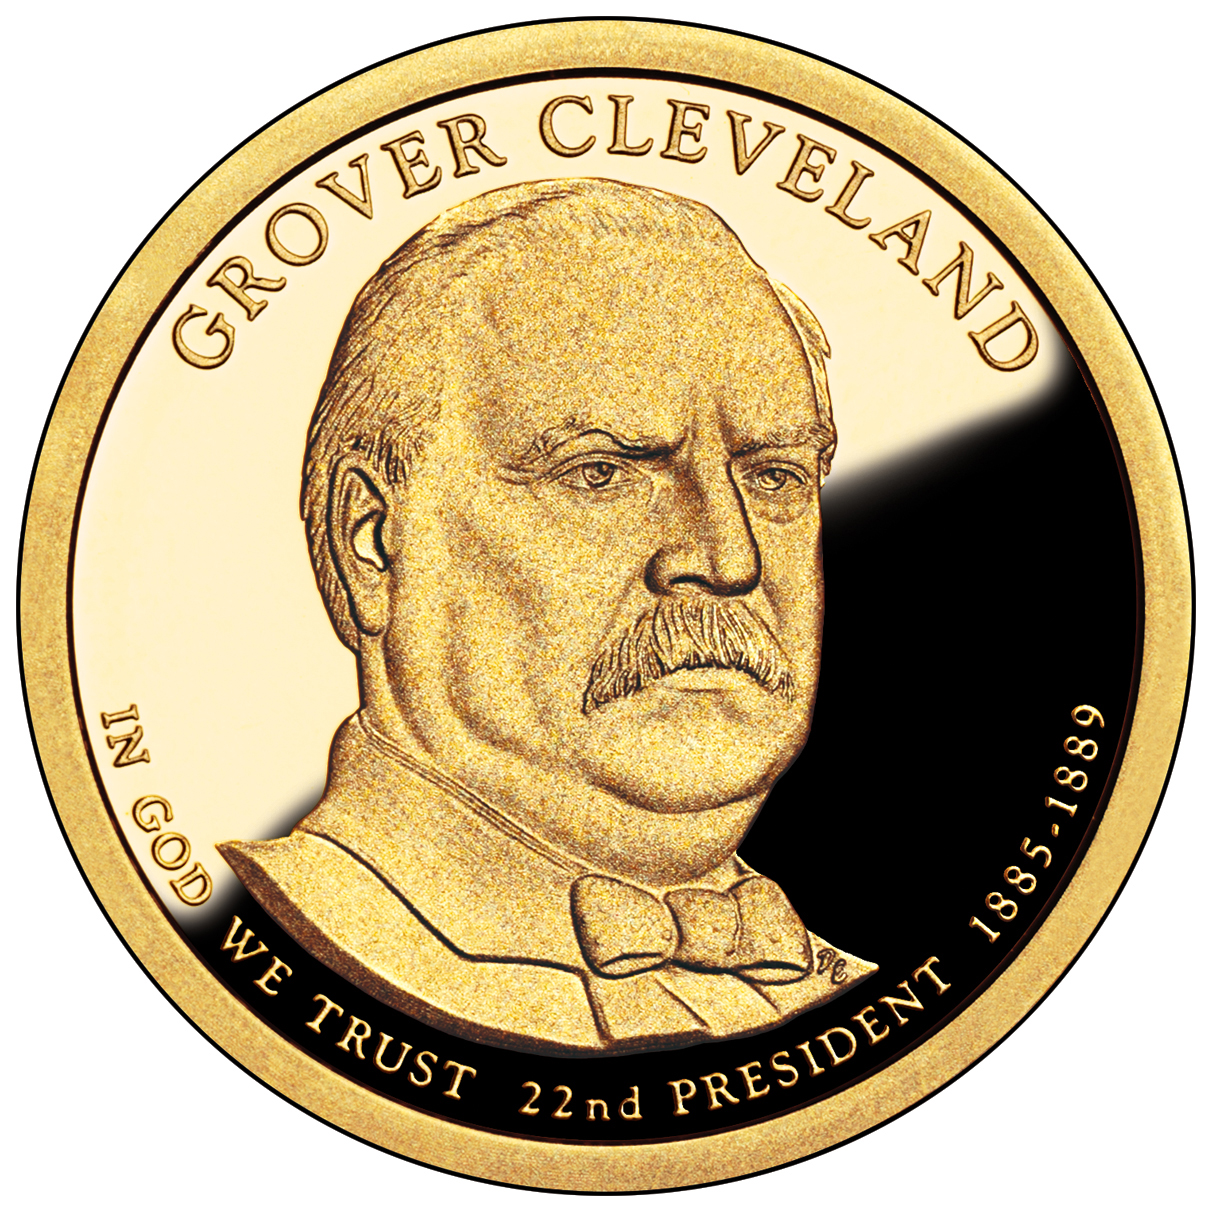 2012 Presidential Dollar Coin Grover Cleveland First Term Proof Obverse